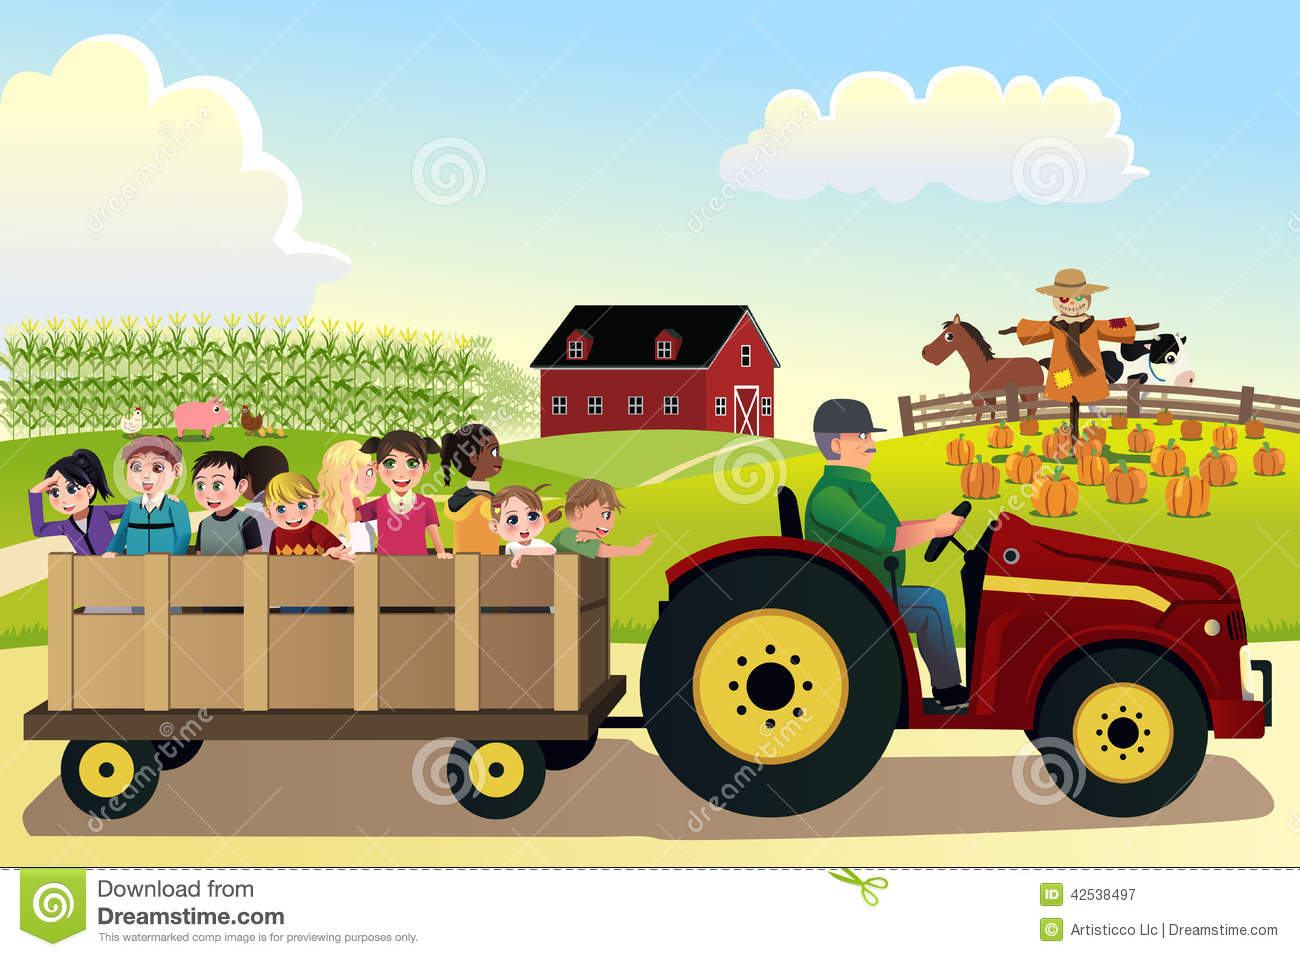 Vector Illustration Of Kids Going On A Hayride In A Farm With Corn